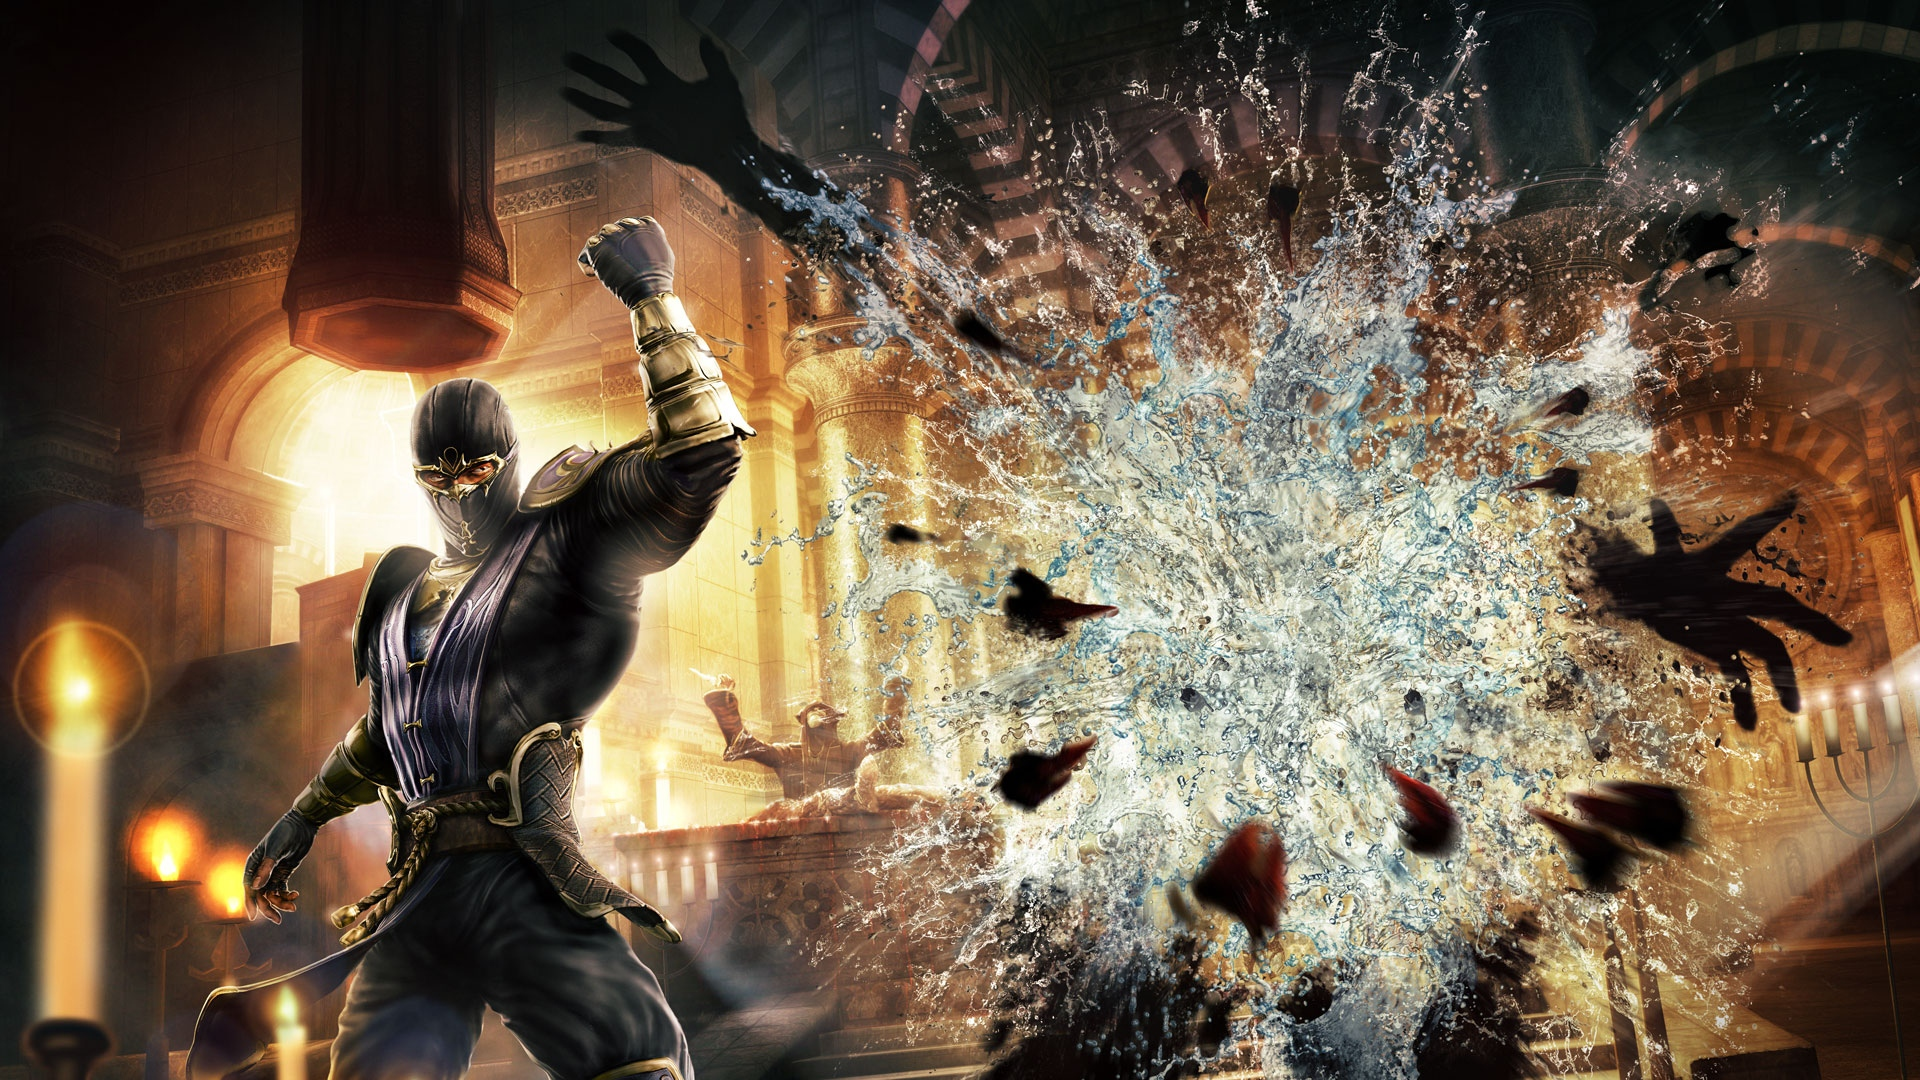 mortal kombat fighter fist from wallpapers4uorg your wallpaper 1920x1080